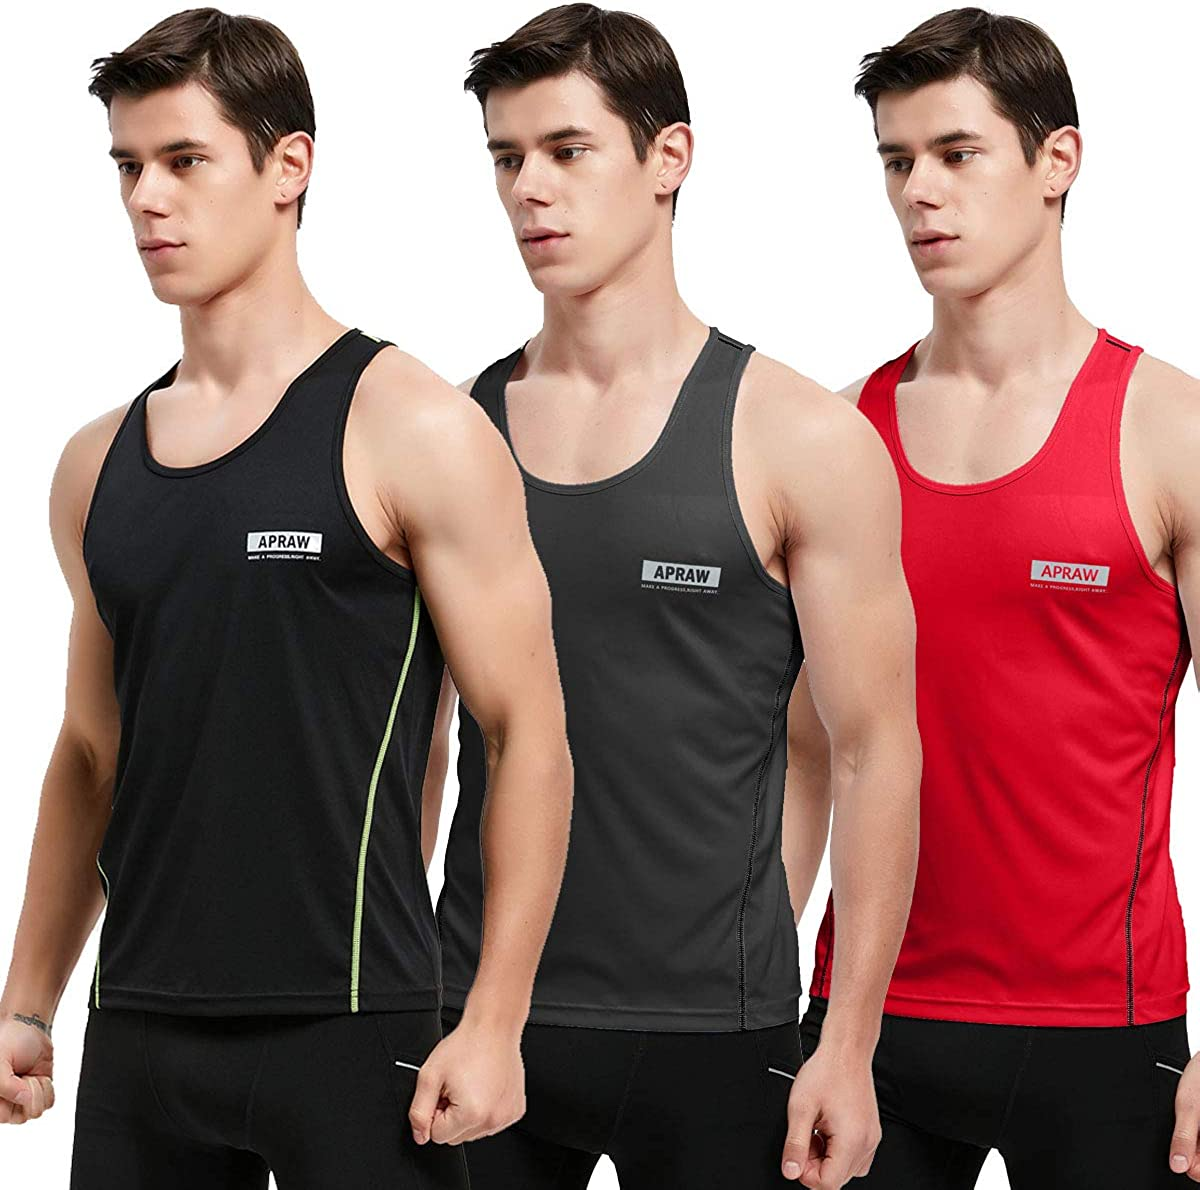 APRAW Men's 3 Pack Quick Dry Tank Tops Compression Muscle Shirts Training Compression Baselayer